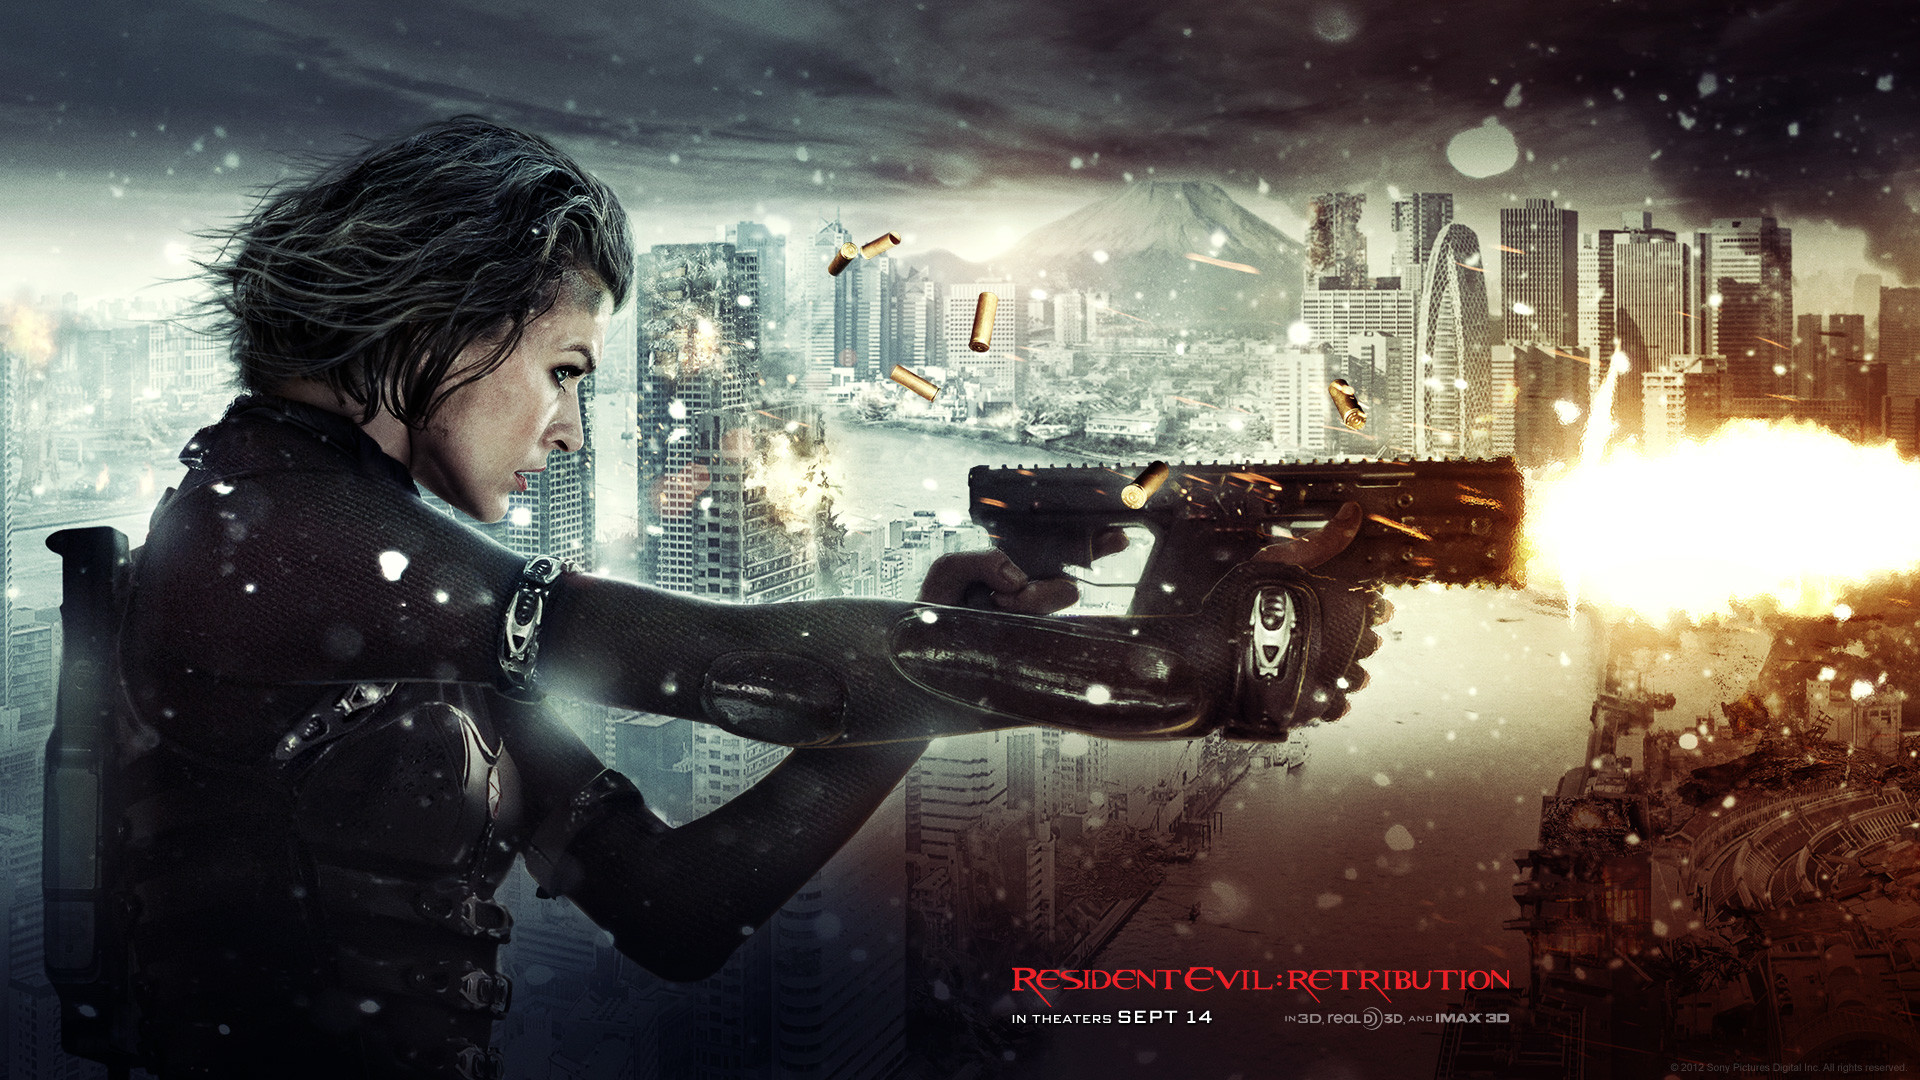 1920x1080 Resident Evil 5 Retribution Movie HD Wallpaper - iHD Wallpapers